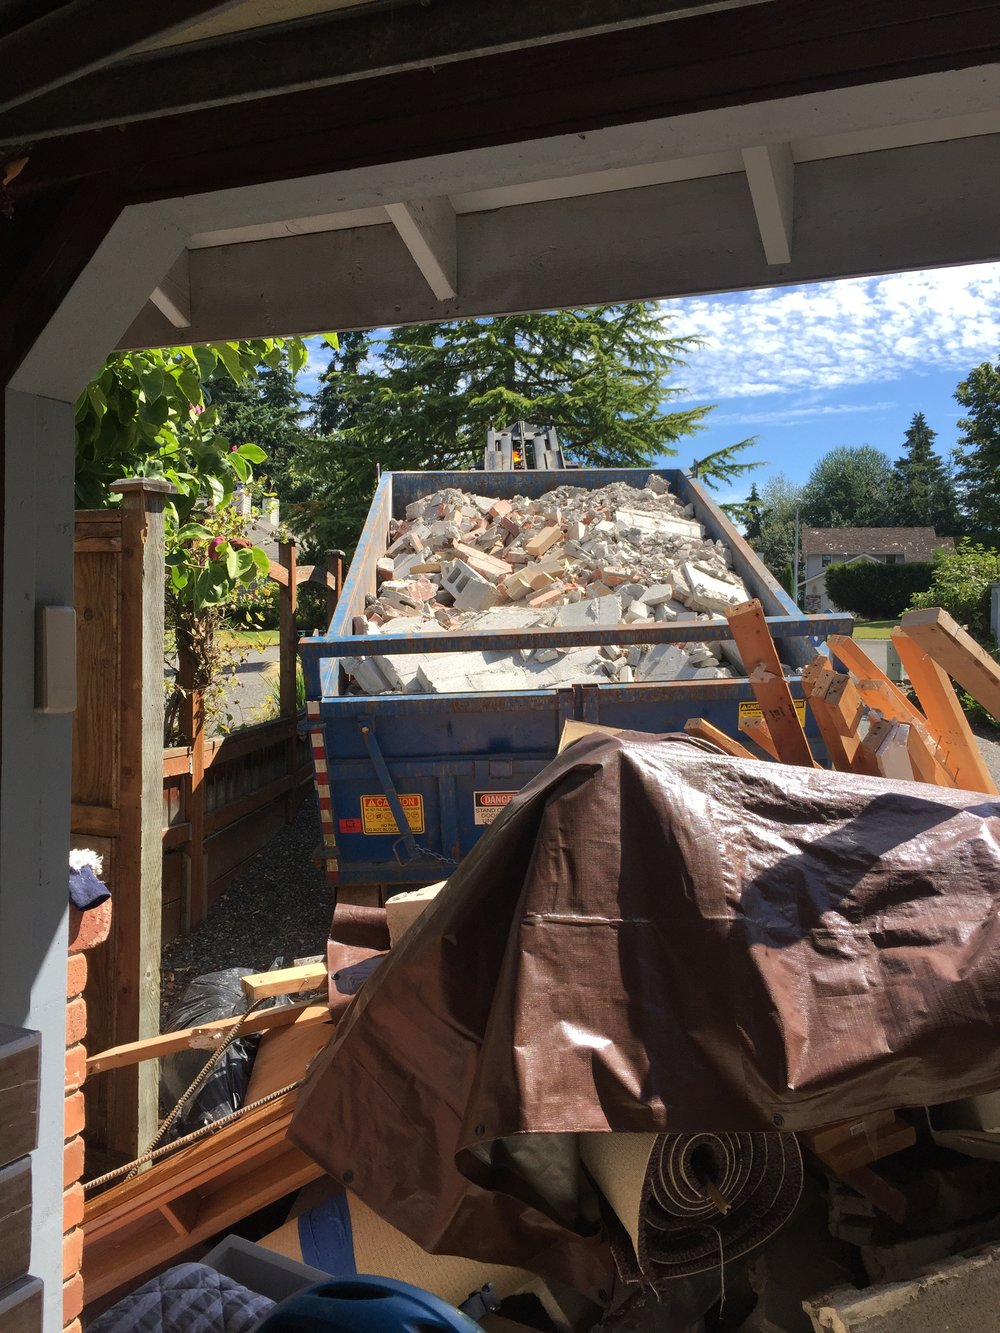 We will one whole dumpster just with brick and concrete from the fireplace!